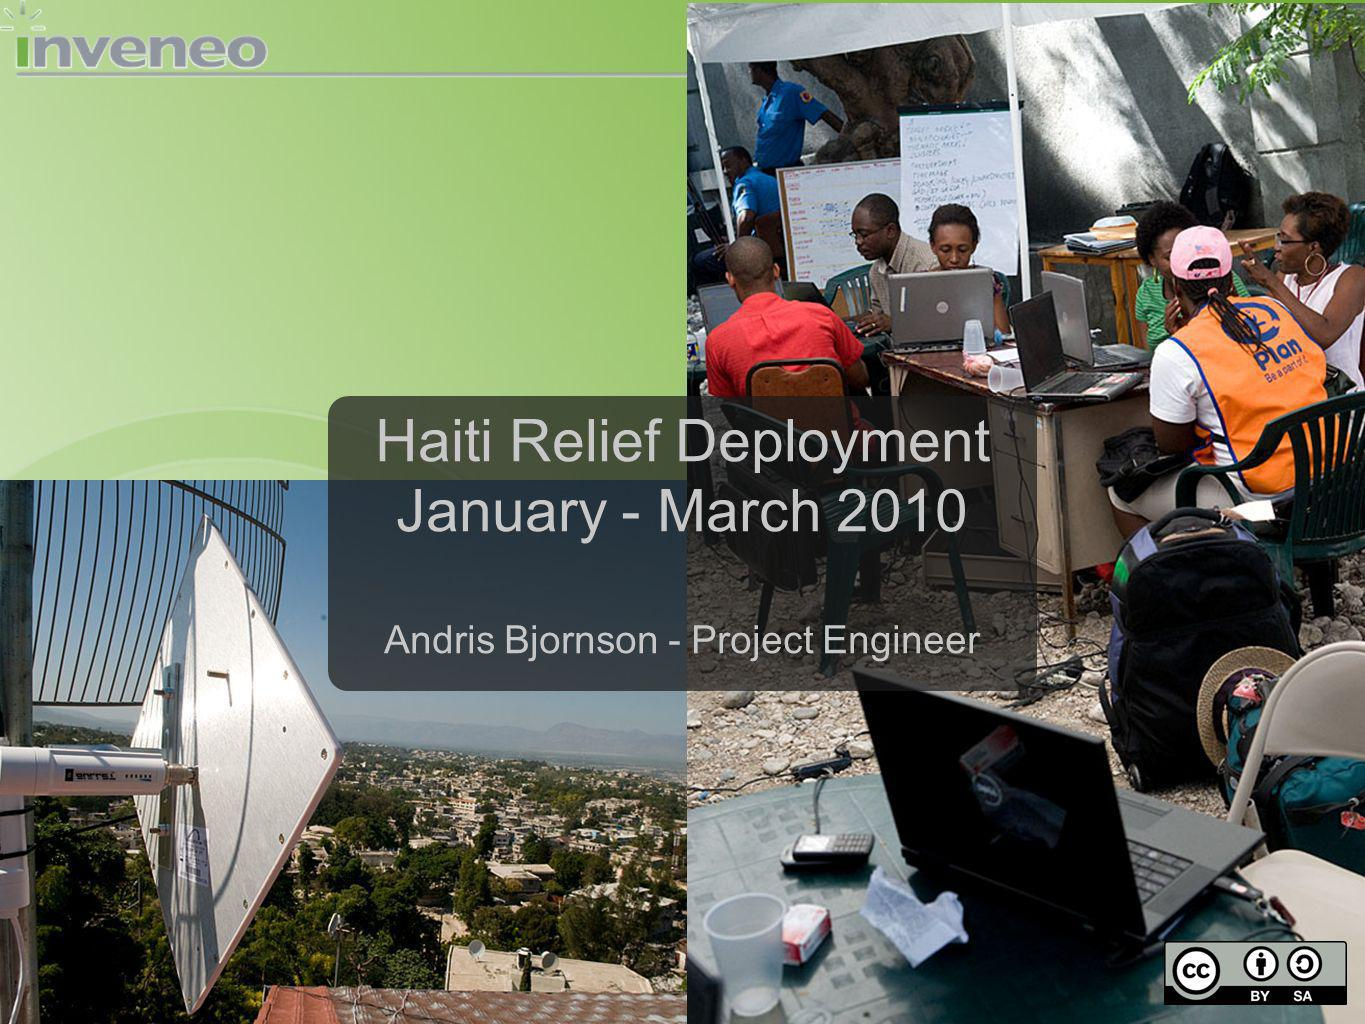 Haiti Relief Deployment January - March 2010 Andris Bjornson - Project Engineer